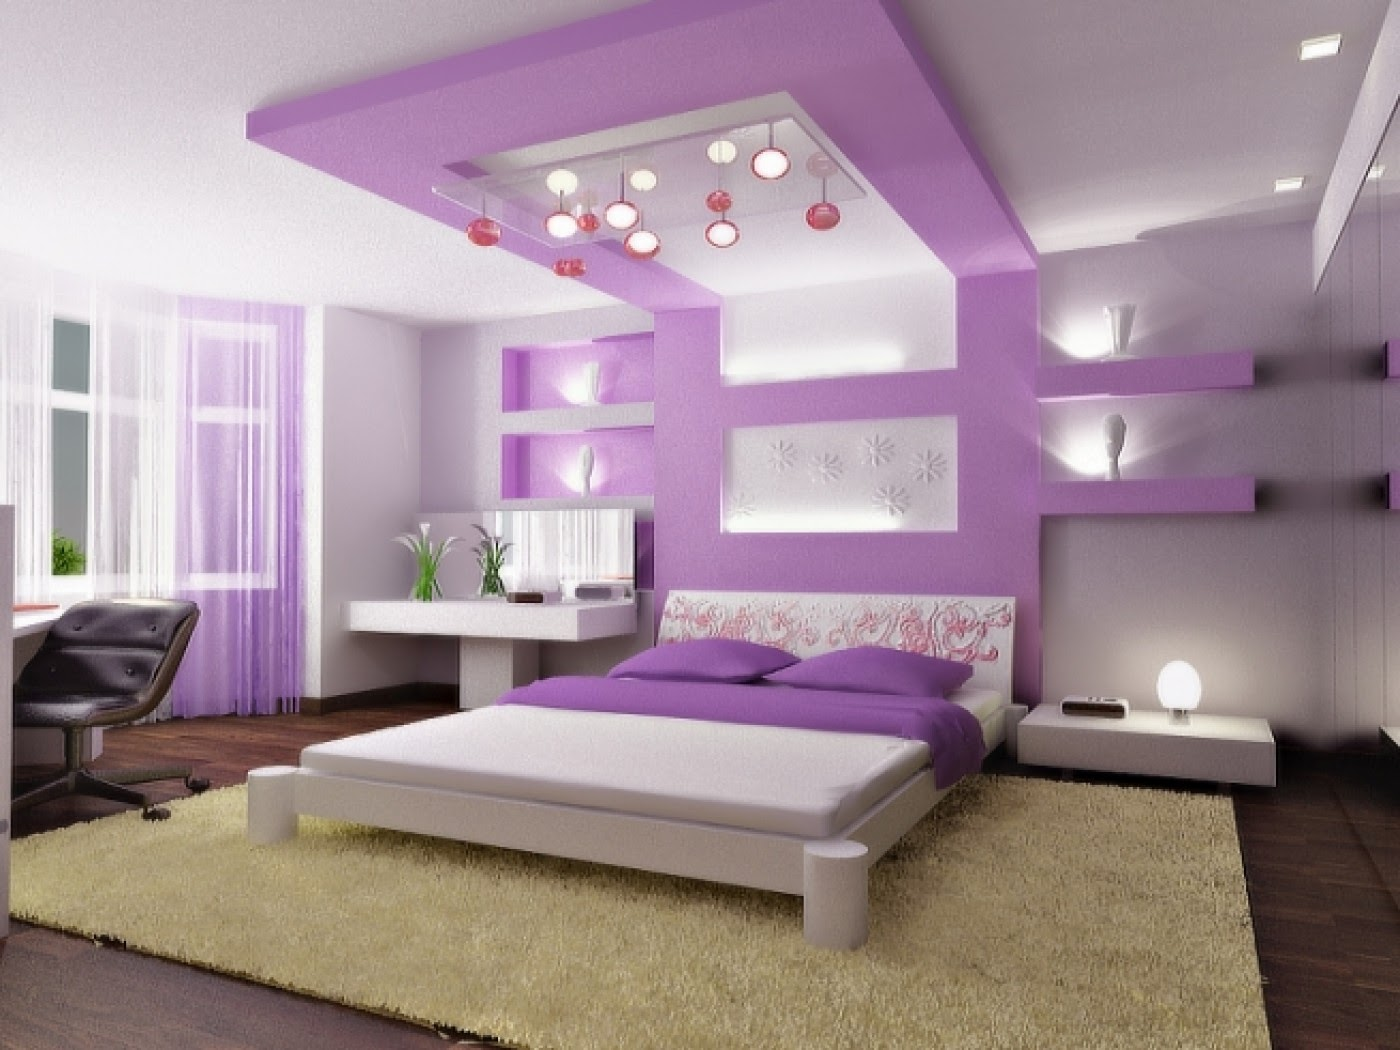 Delicieux 11 Bedroom Ceiling Design